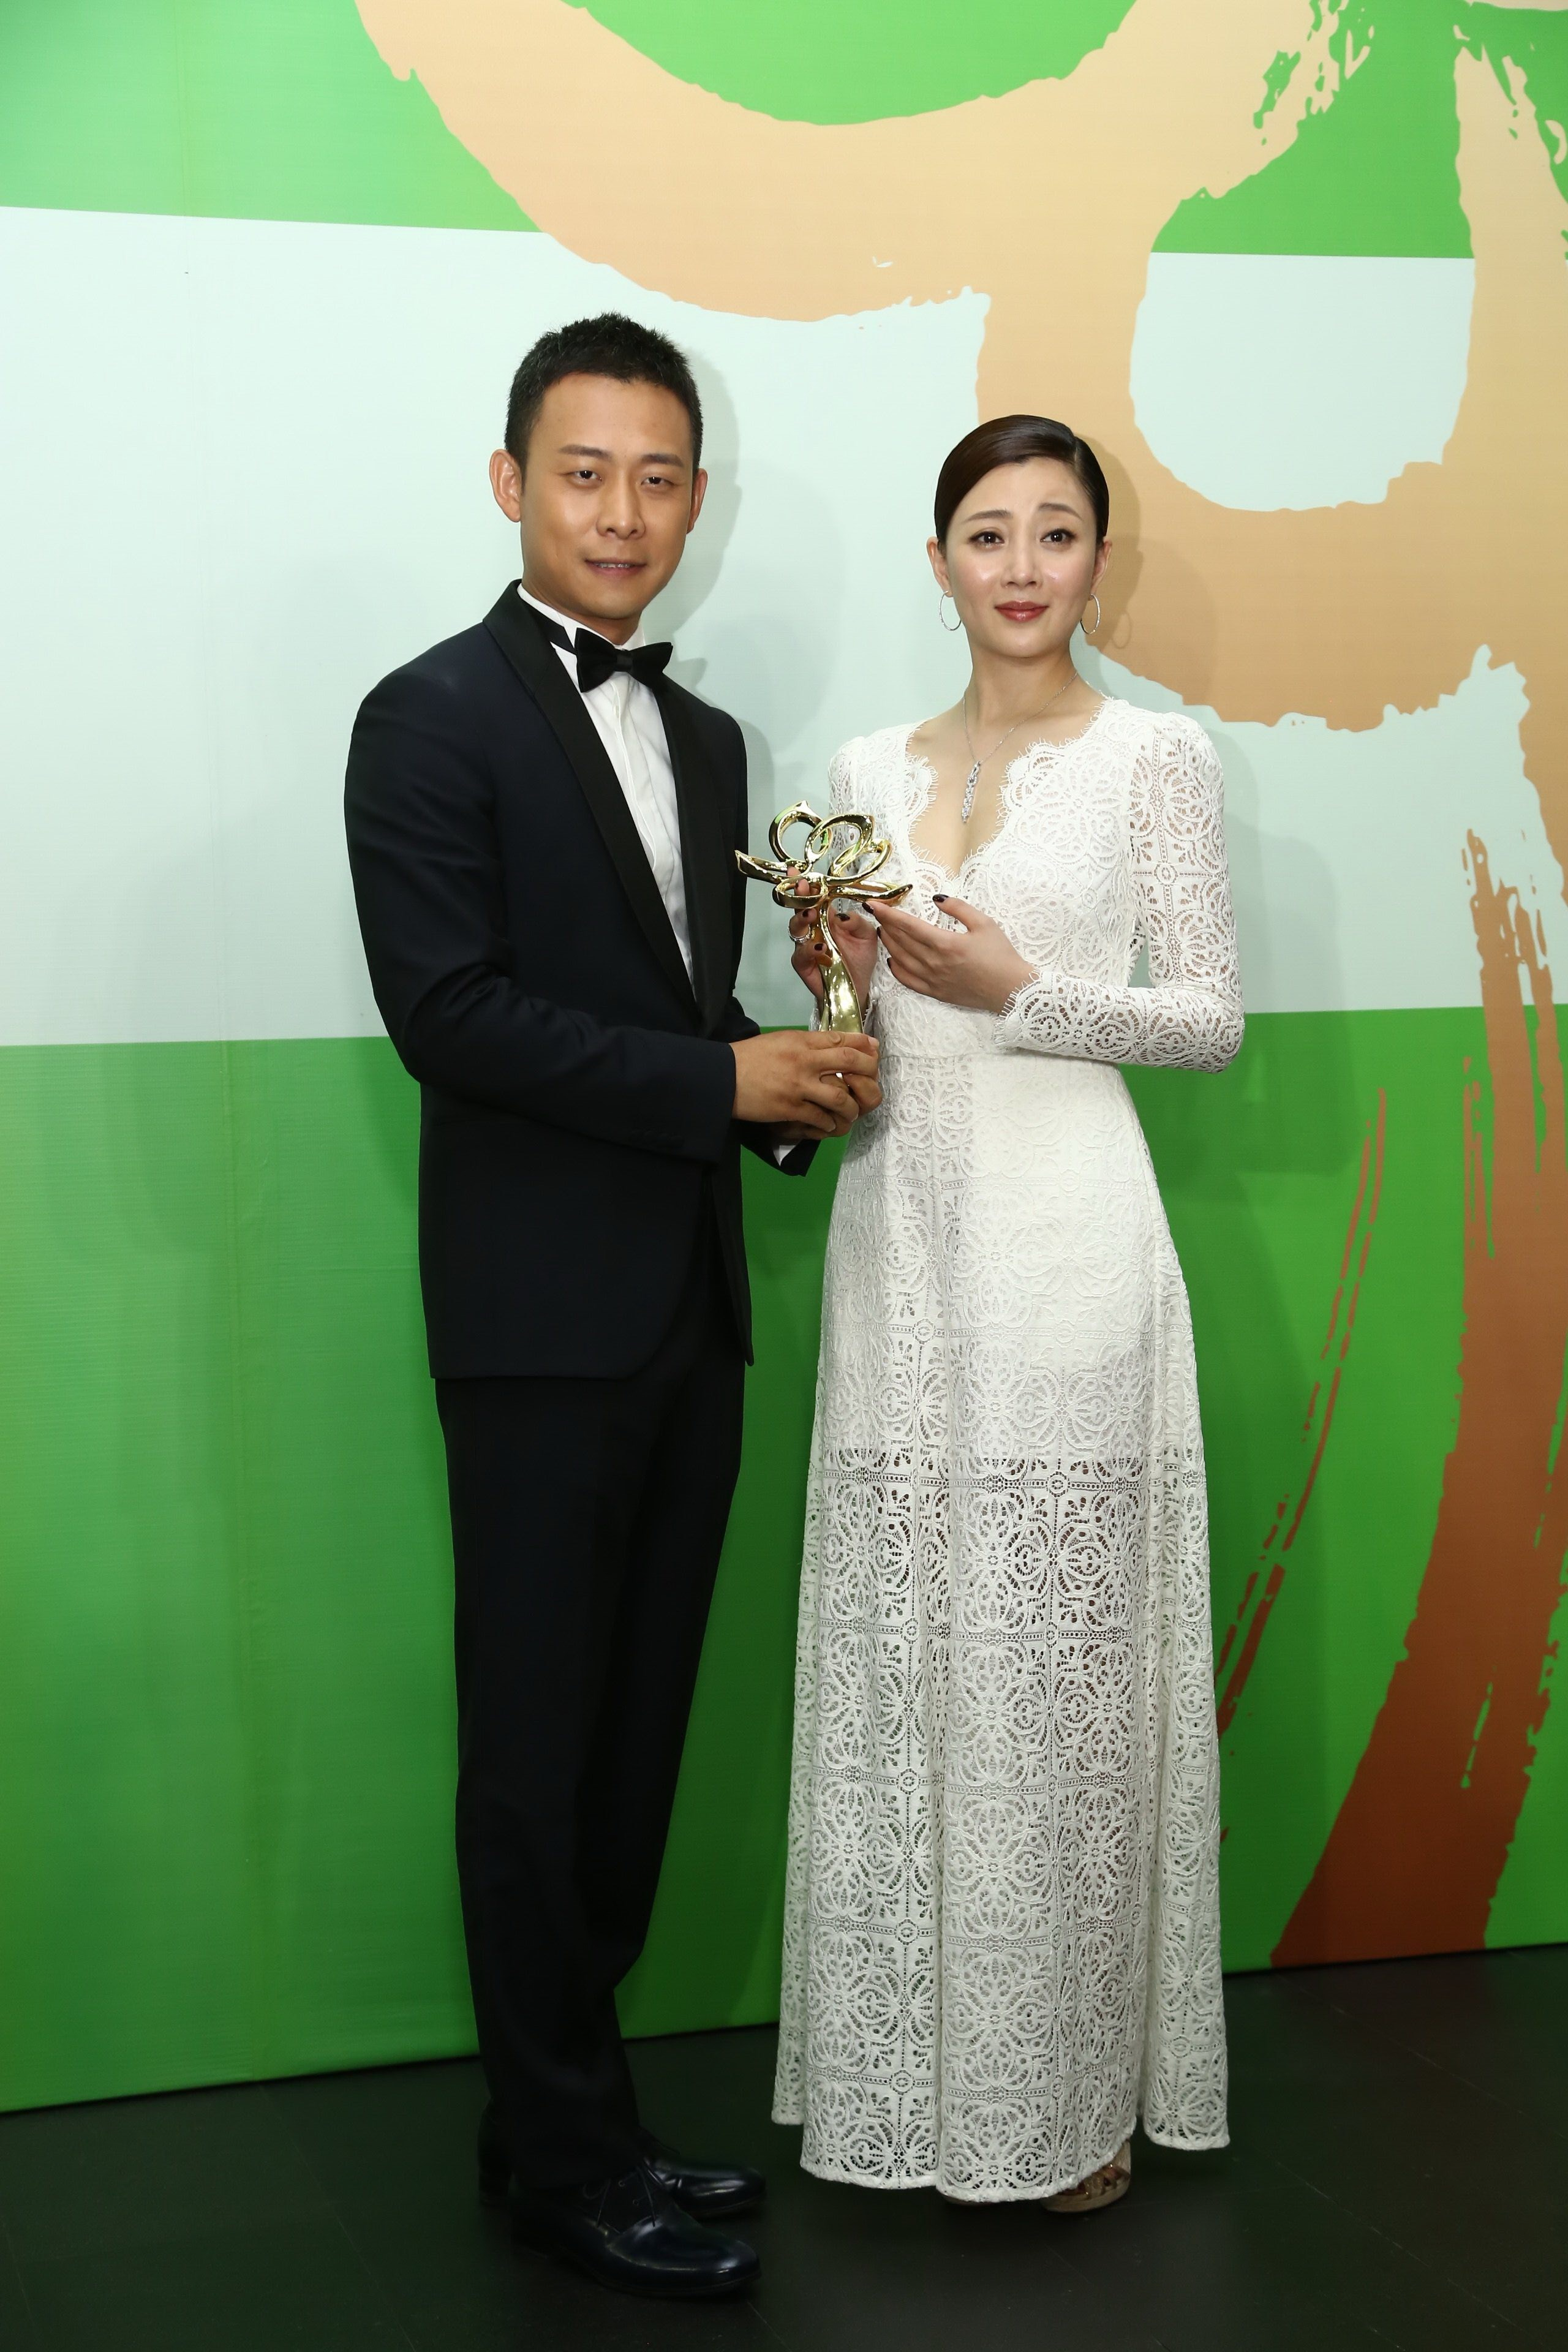 Chinese actress Yin Tao, right, and actor Zhang Yi pose with their trophies after winning the Best Actress and Best Actor awards for their roles in the TV drama